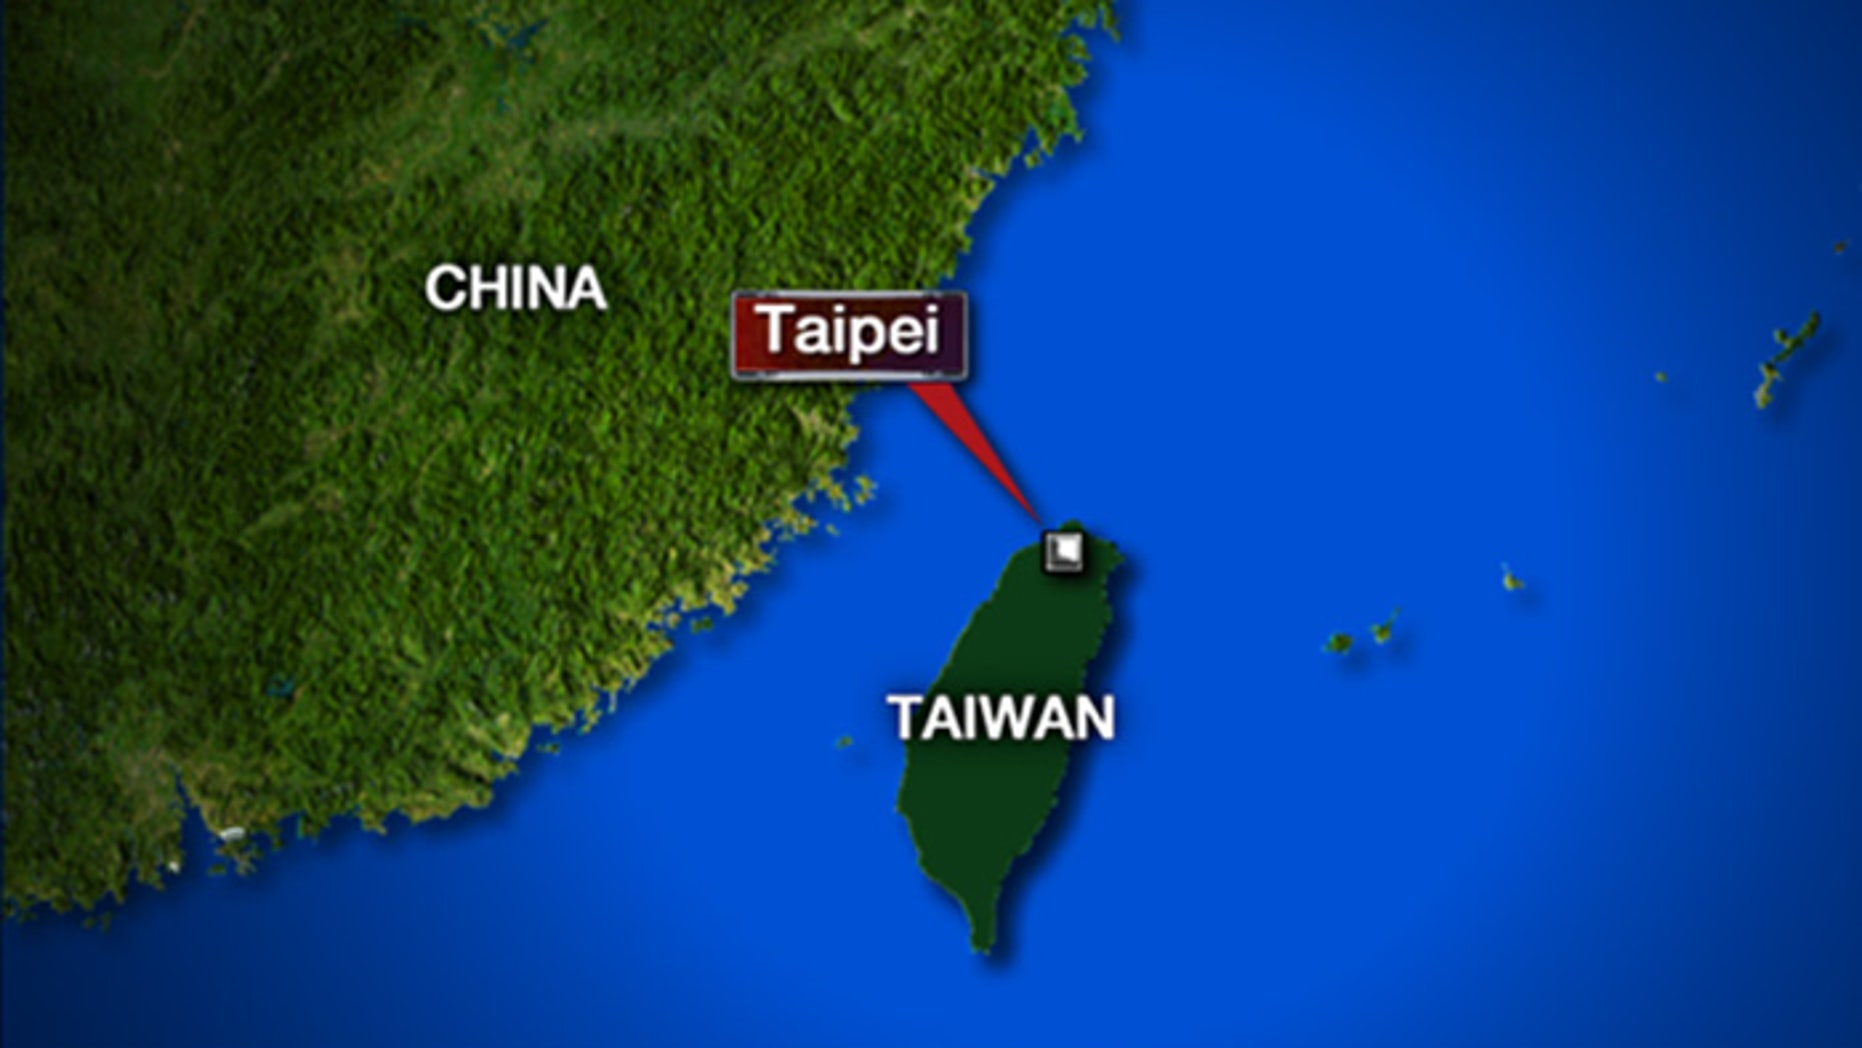 A tunnel connecting mainland China to Taiwan could cost $80 billion - and renew tensions between the two countries. (AP)